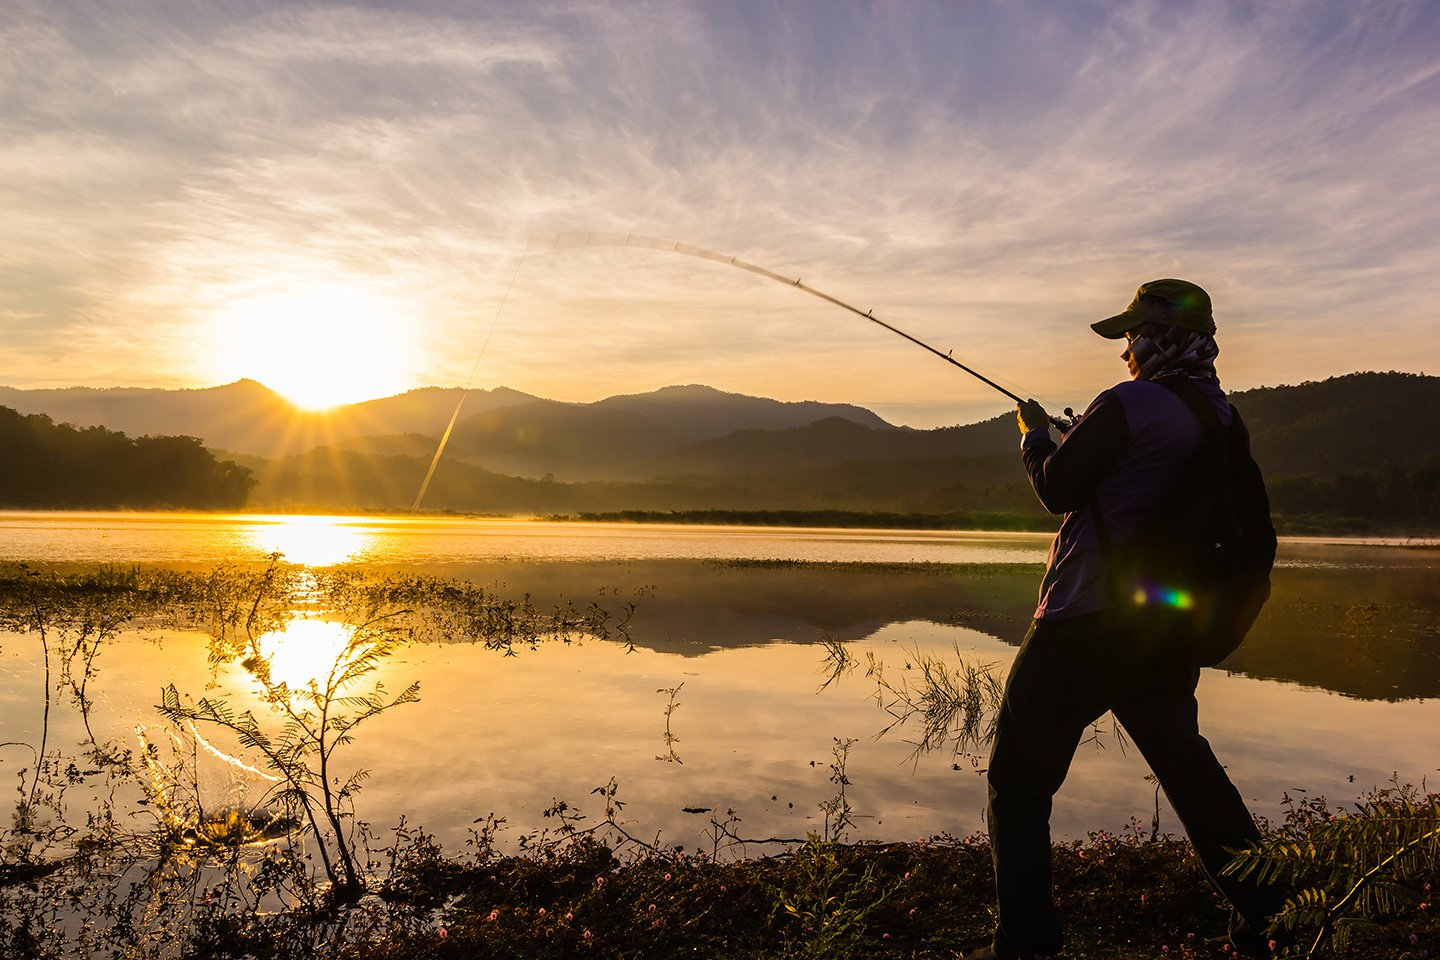 An angler standing by a lake fighting a fish at sunset